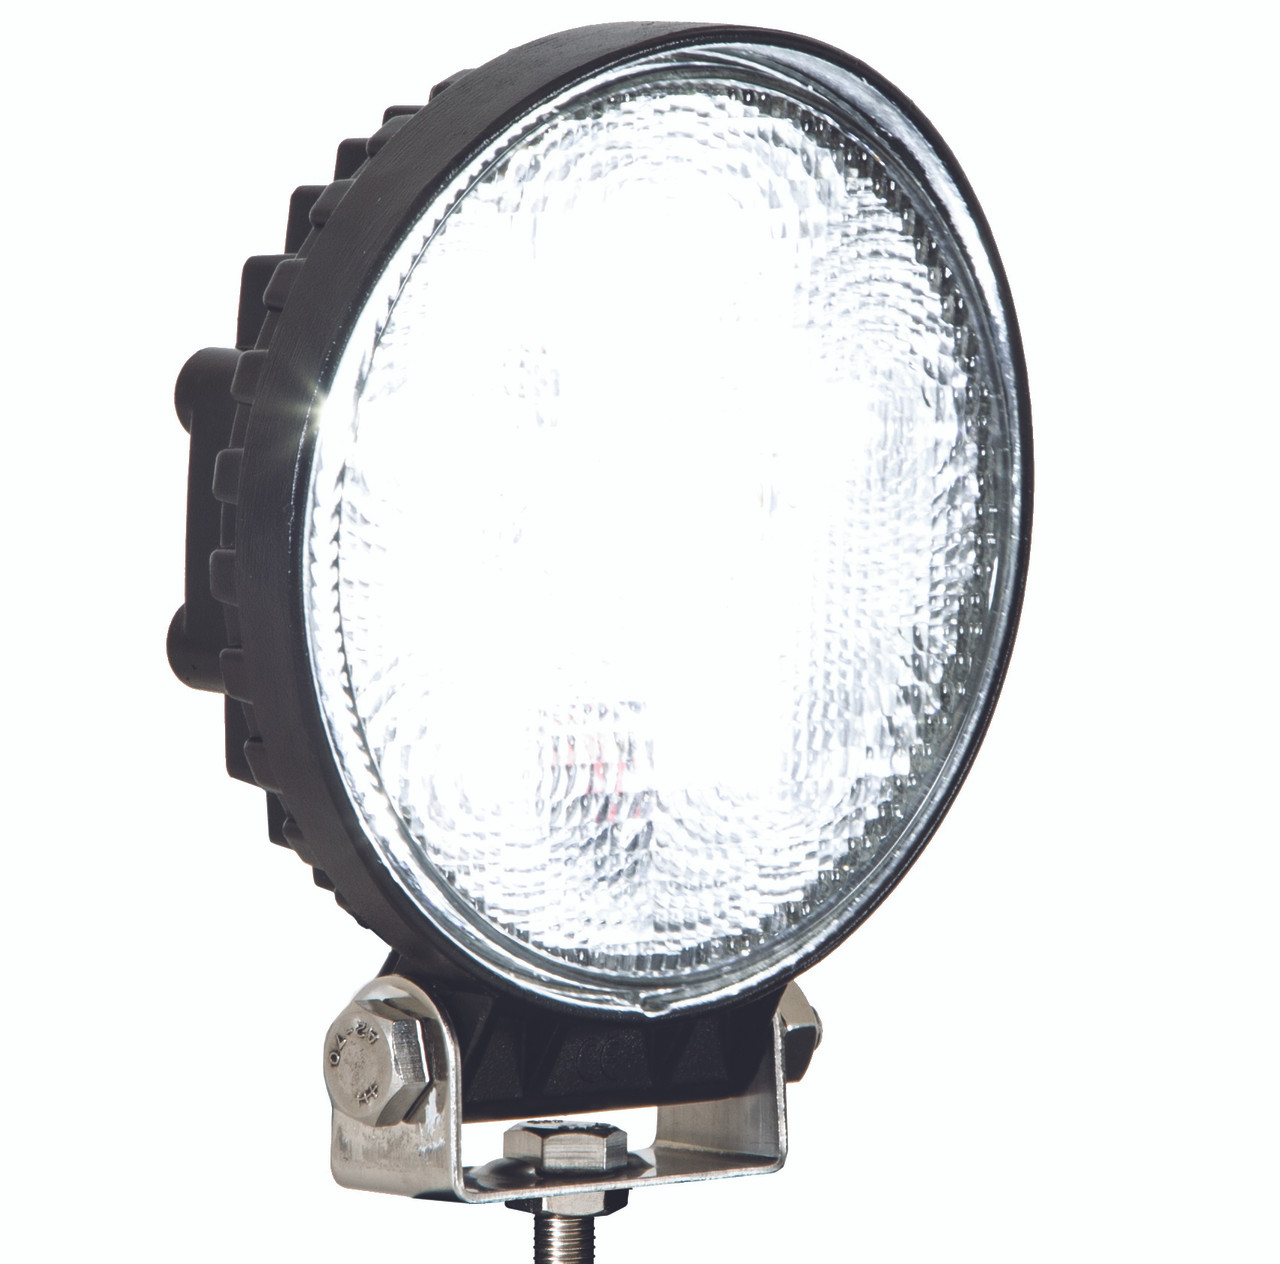 1492215 --- LED Spot Light - Round